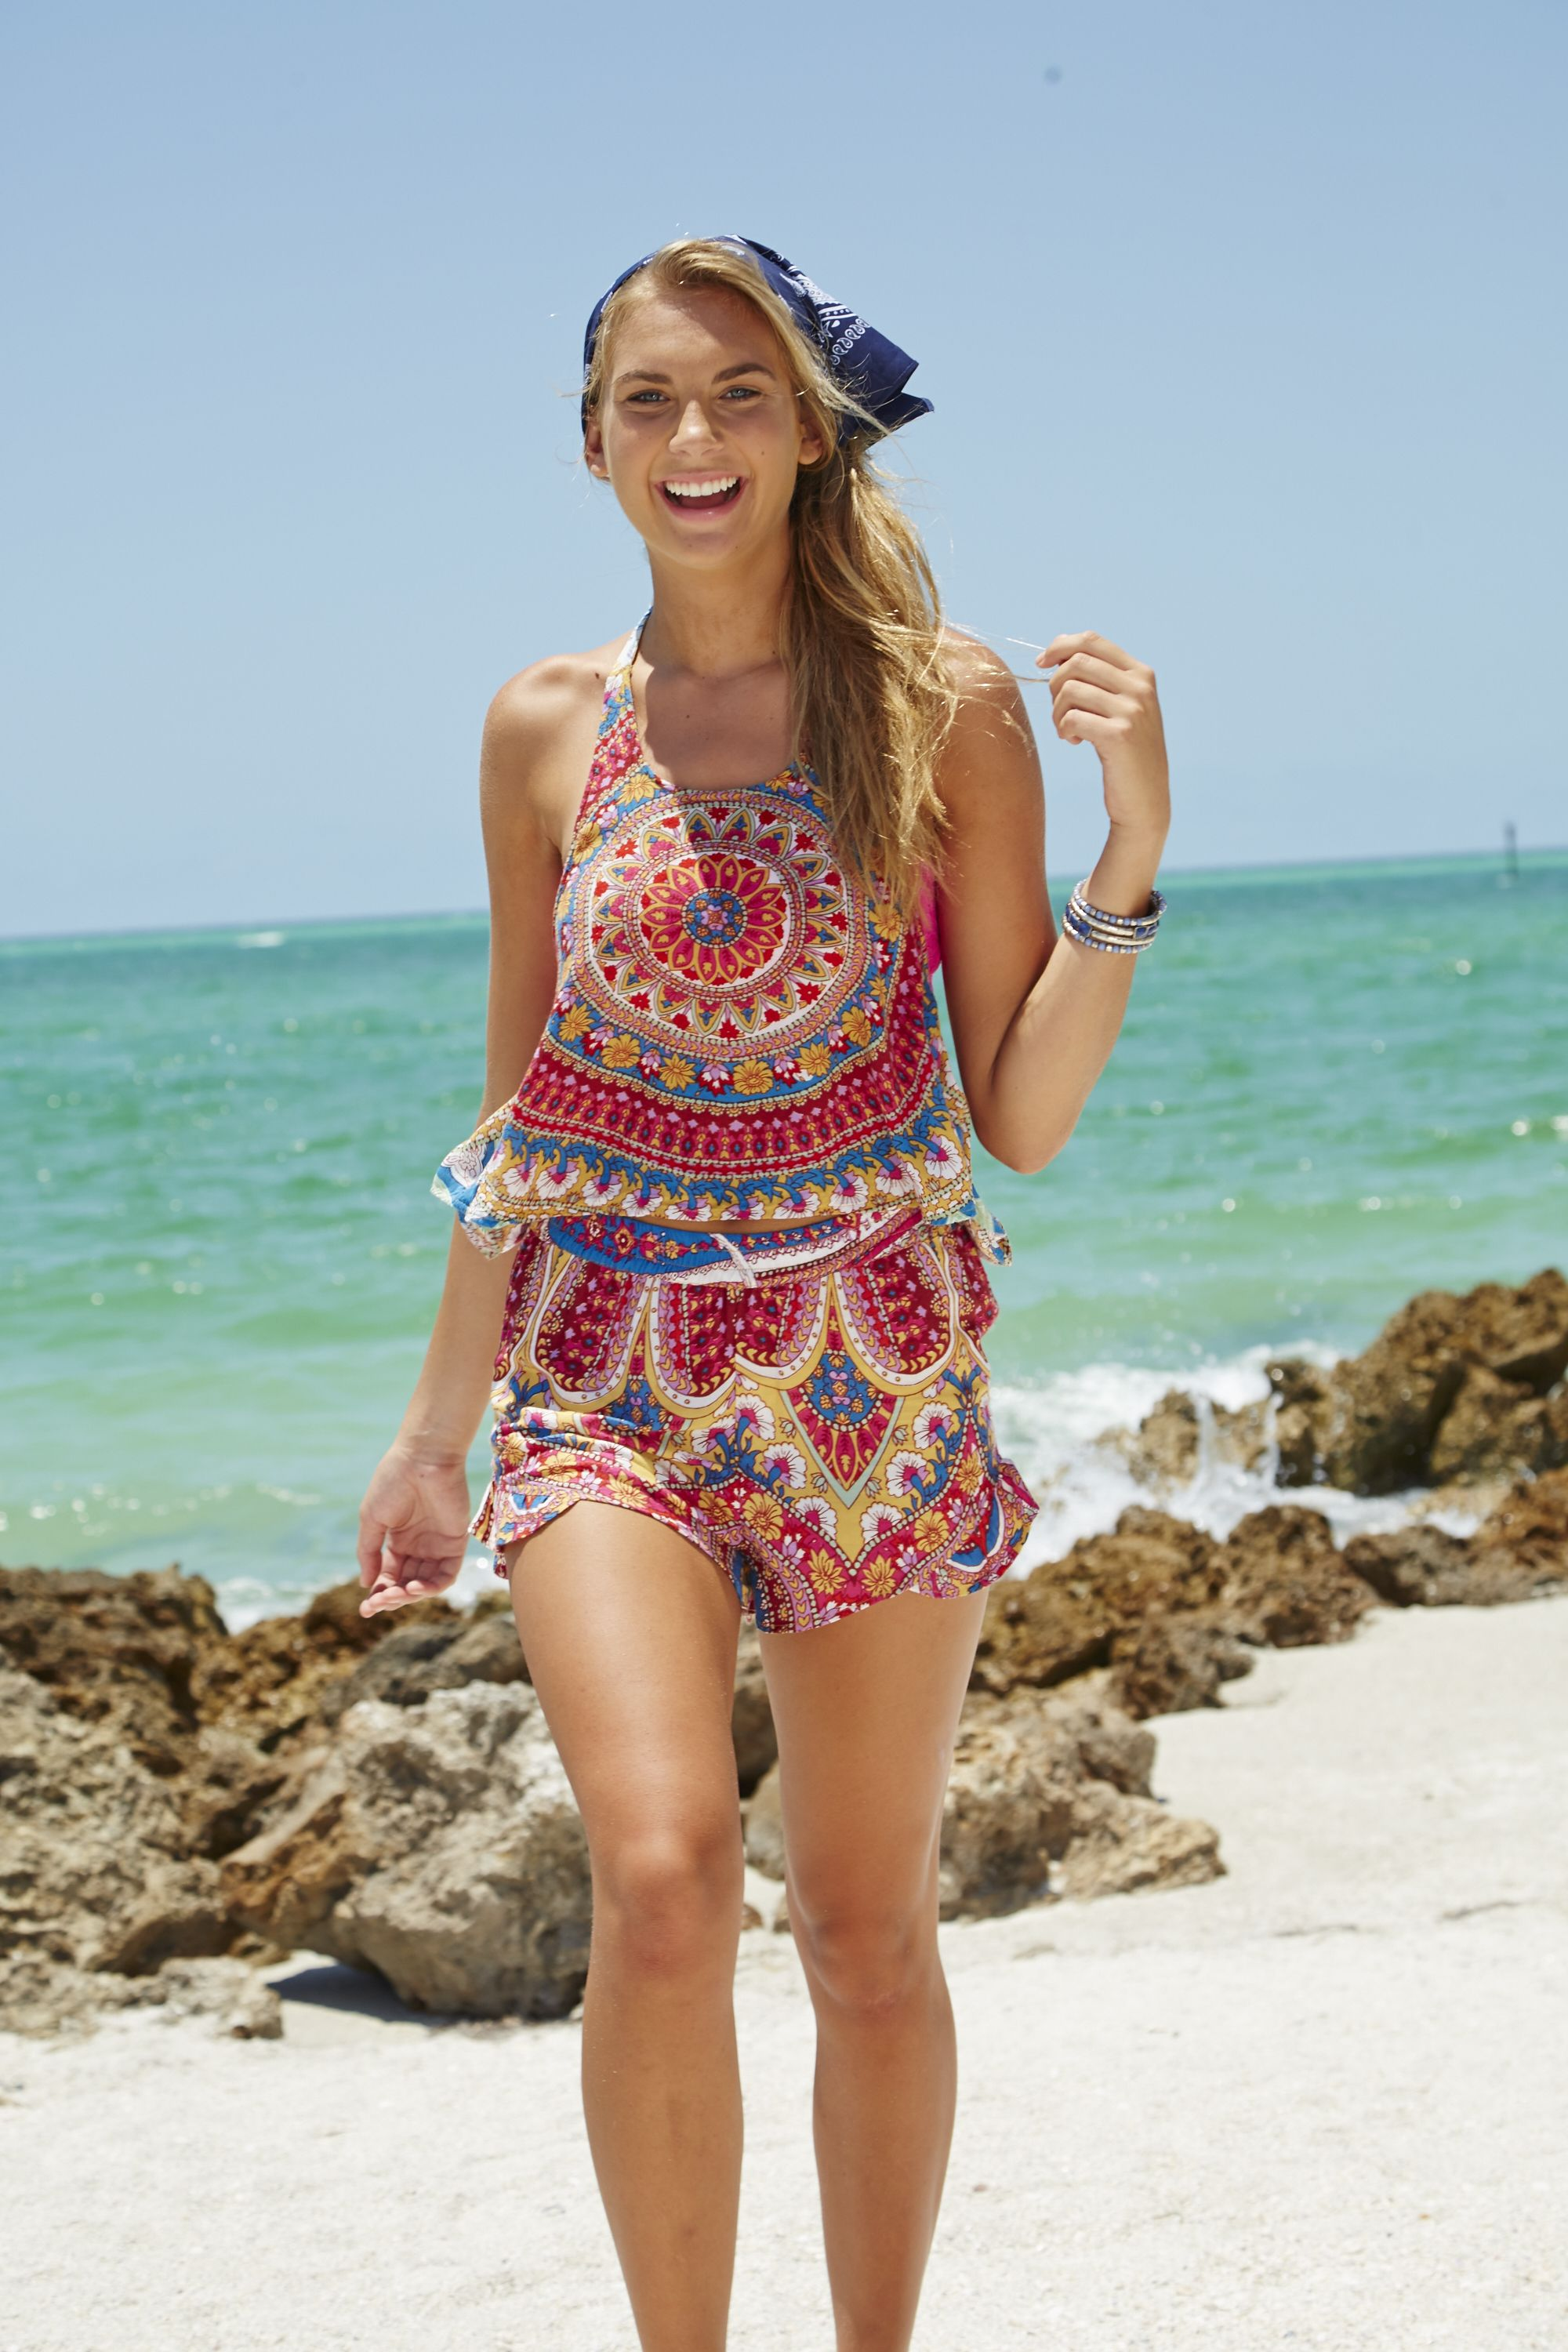 55d04d4f12326 Find the latest trends in swimwear or beachwear with beach dresses, mix and  match swimwear, bathing suits for juniors and match with a new pair of fun  flip ...